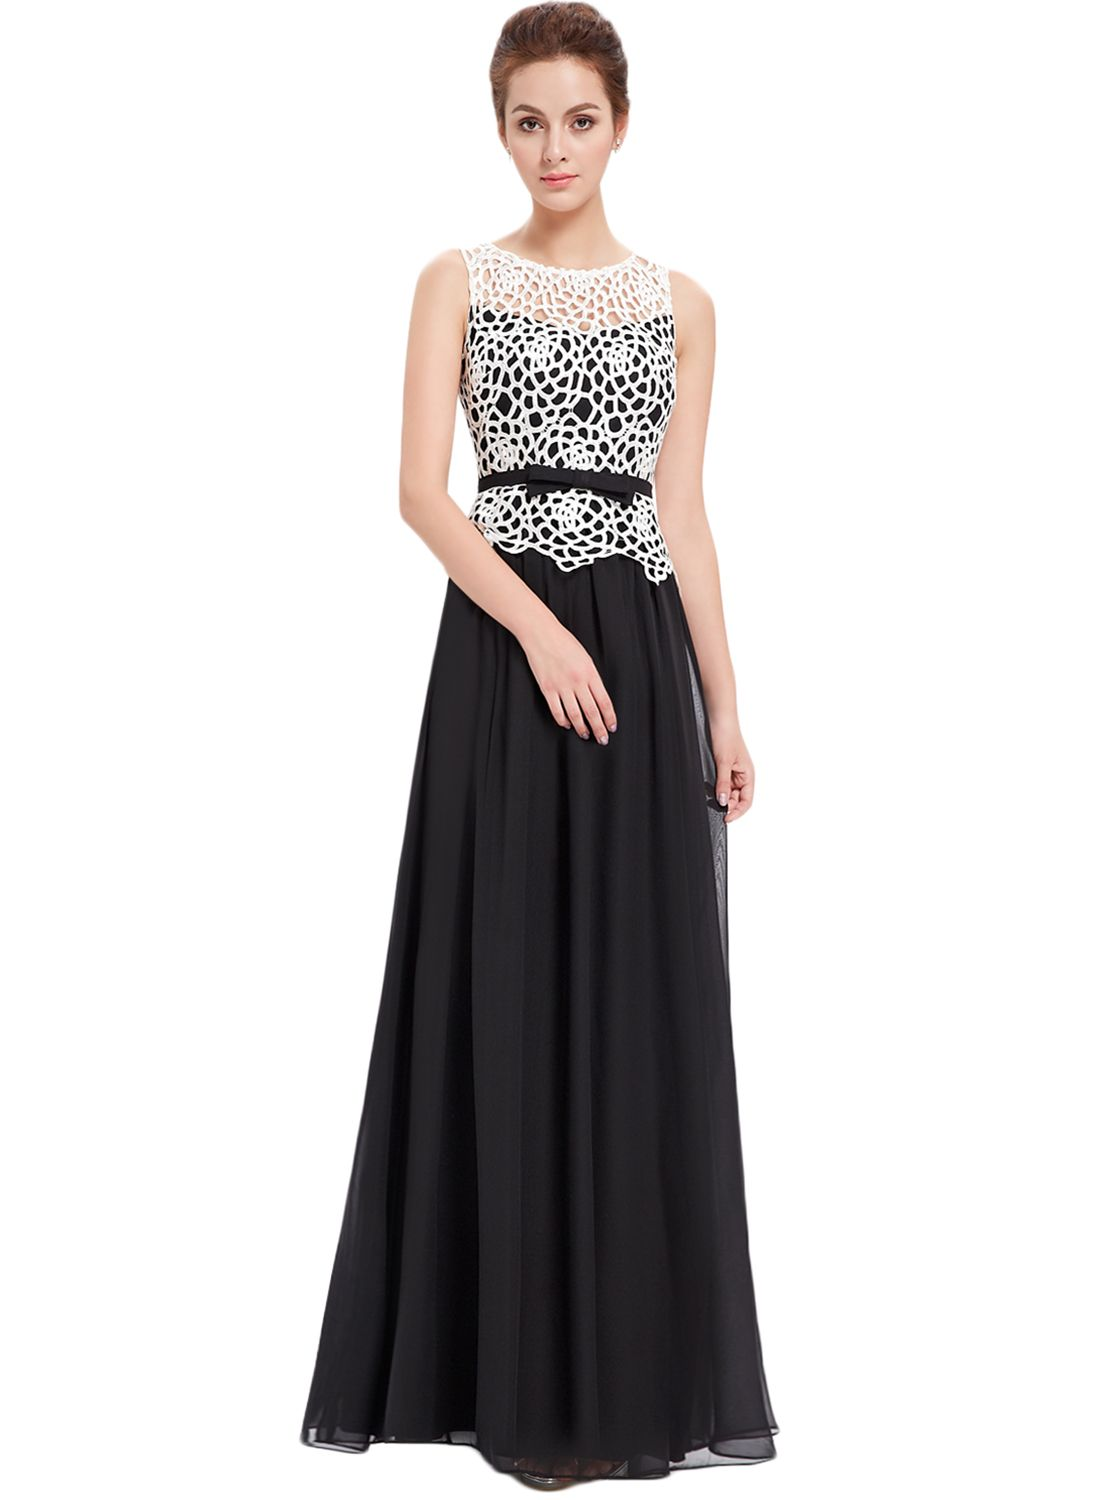 Fashion hollow out sleeveless maxi prom evening dress oasap